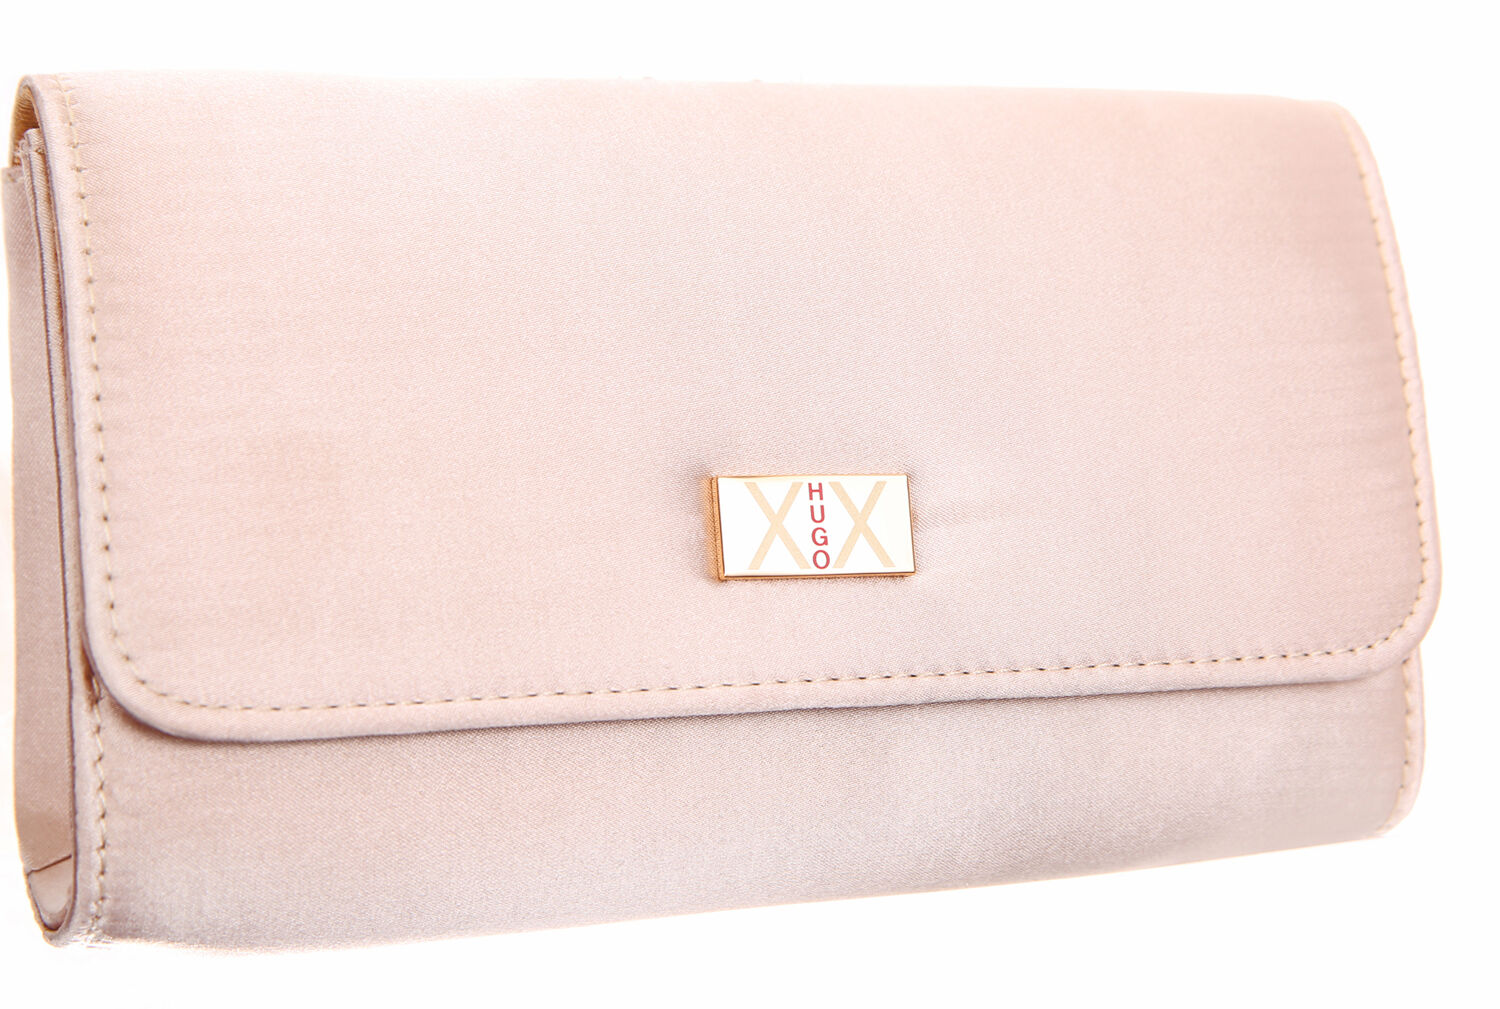 hugo boss xx ladies gold satin cosmetic bag small evening clutch bag ebay. Black Bedroom Furniture Sets. Home Design Ideas